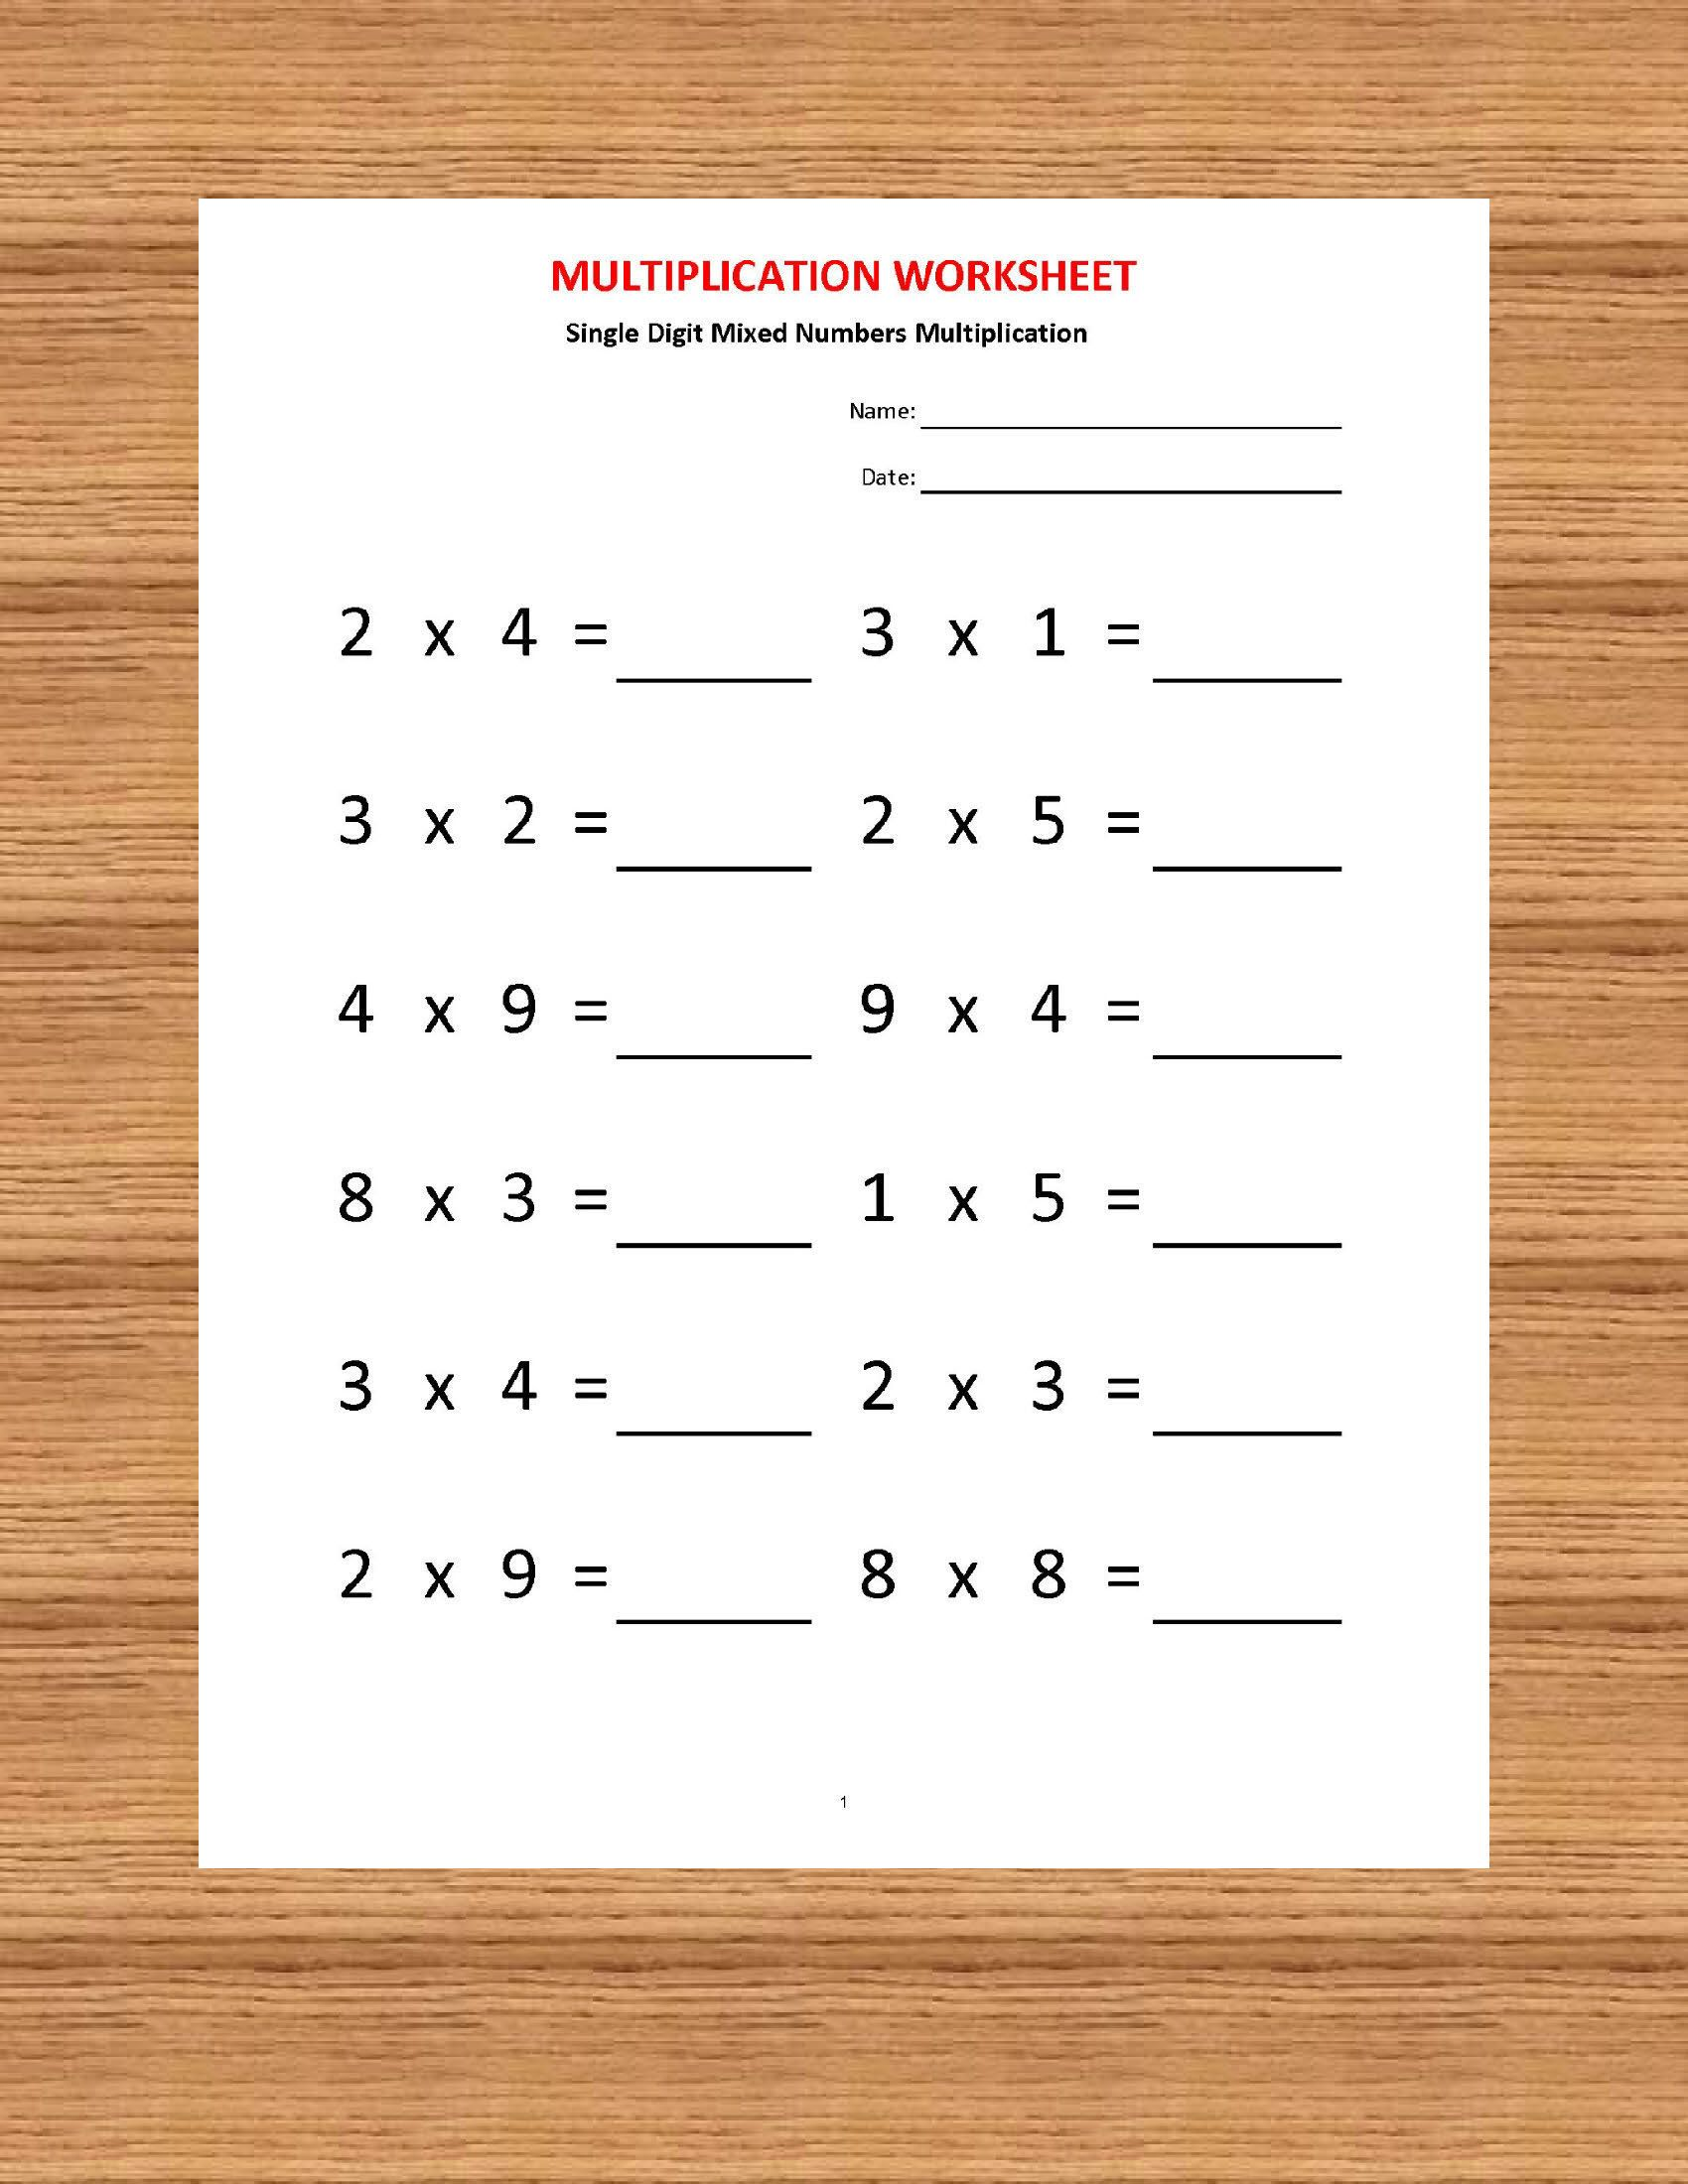 Multiplication By 2 Worksheets Grade 3 Printable